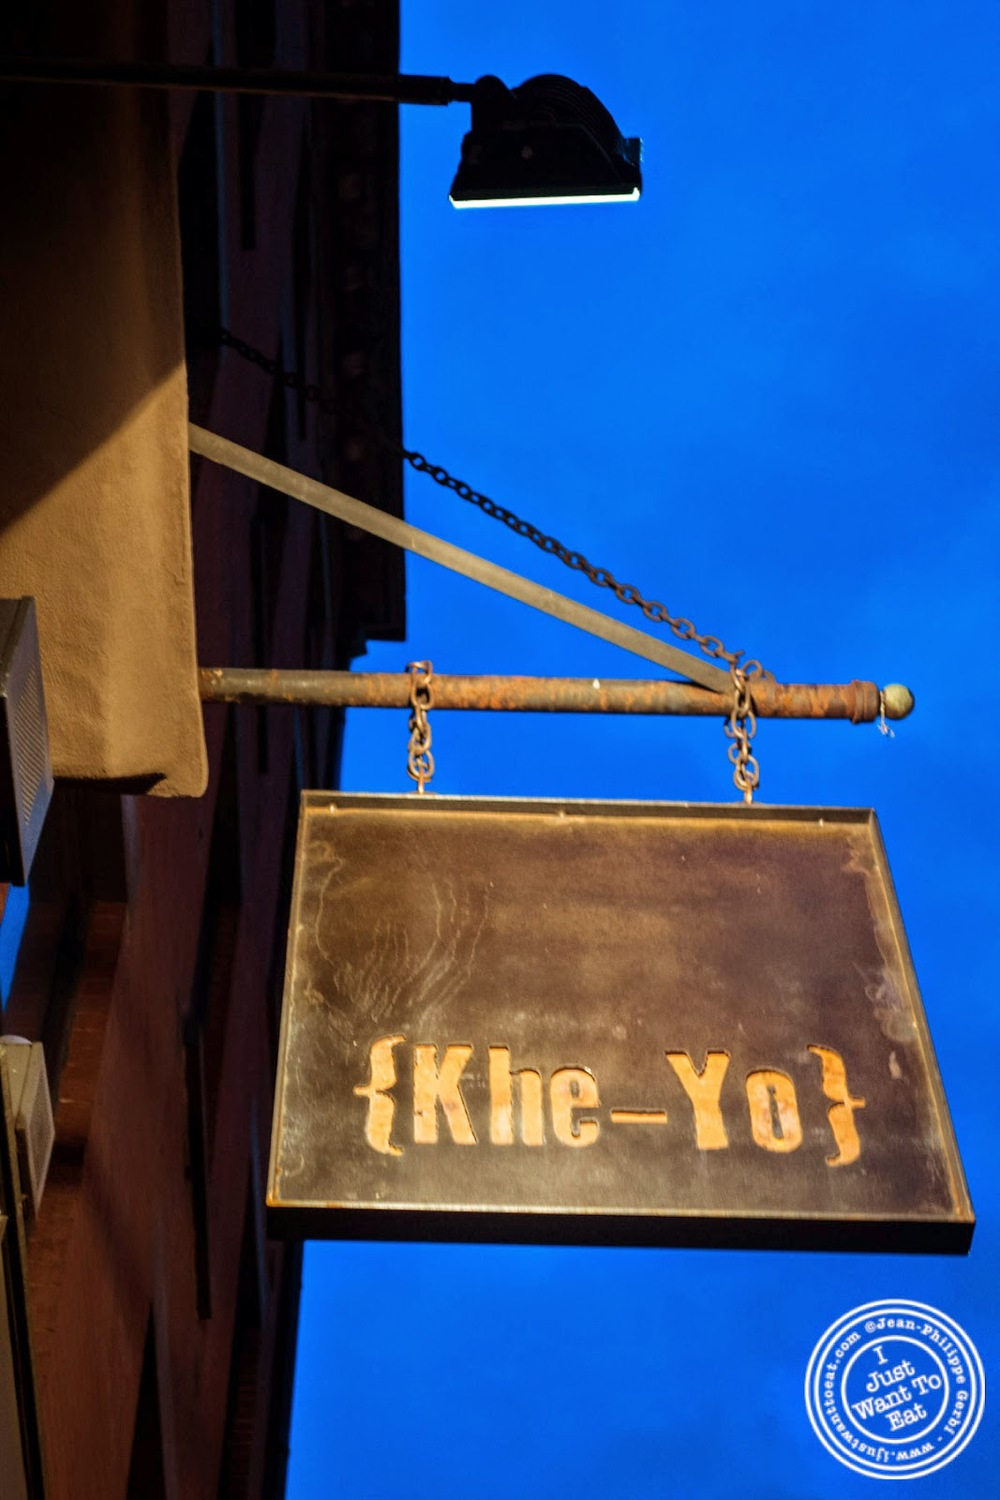 image of Khe-Yo in Tribeca, NYC, NY